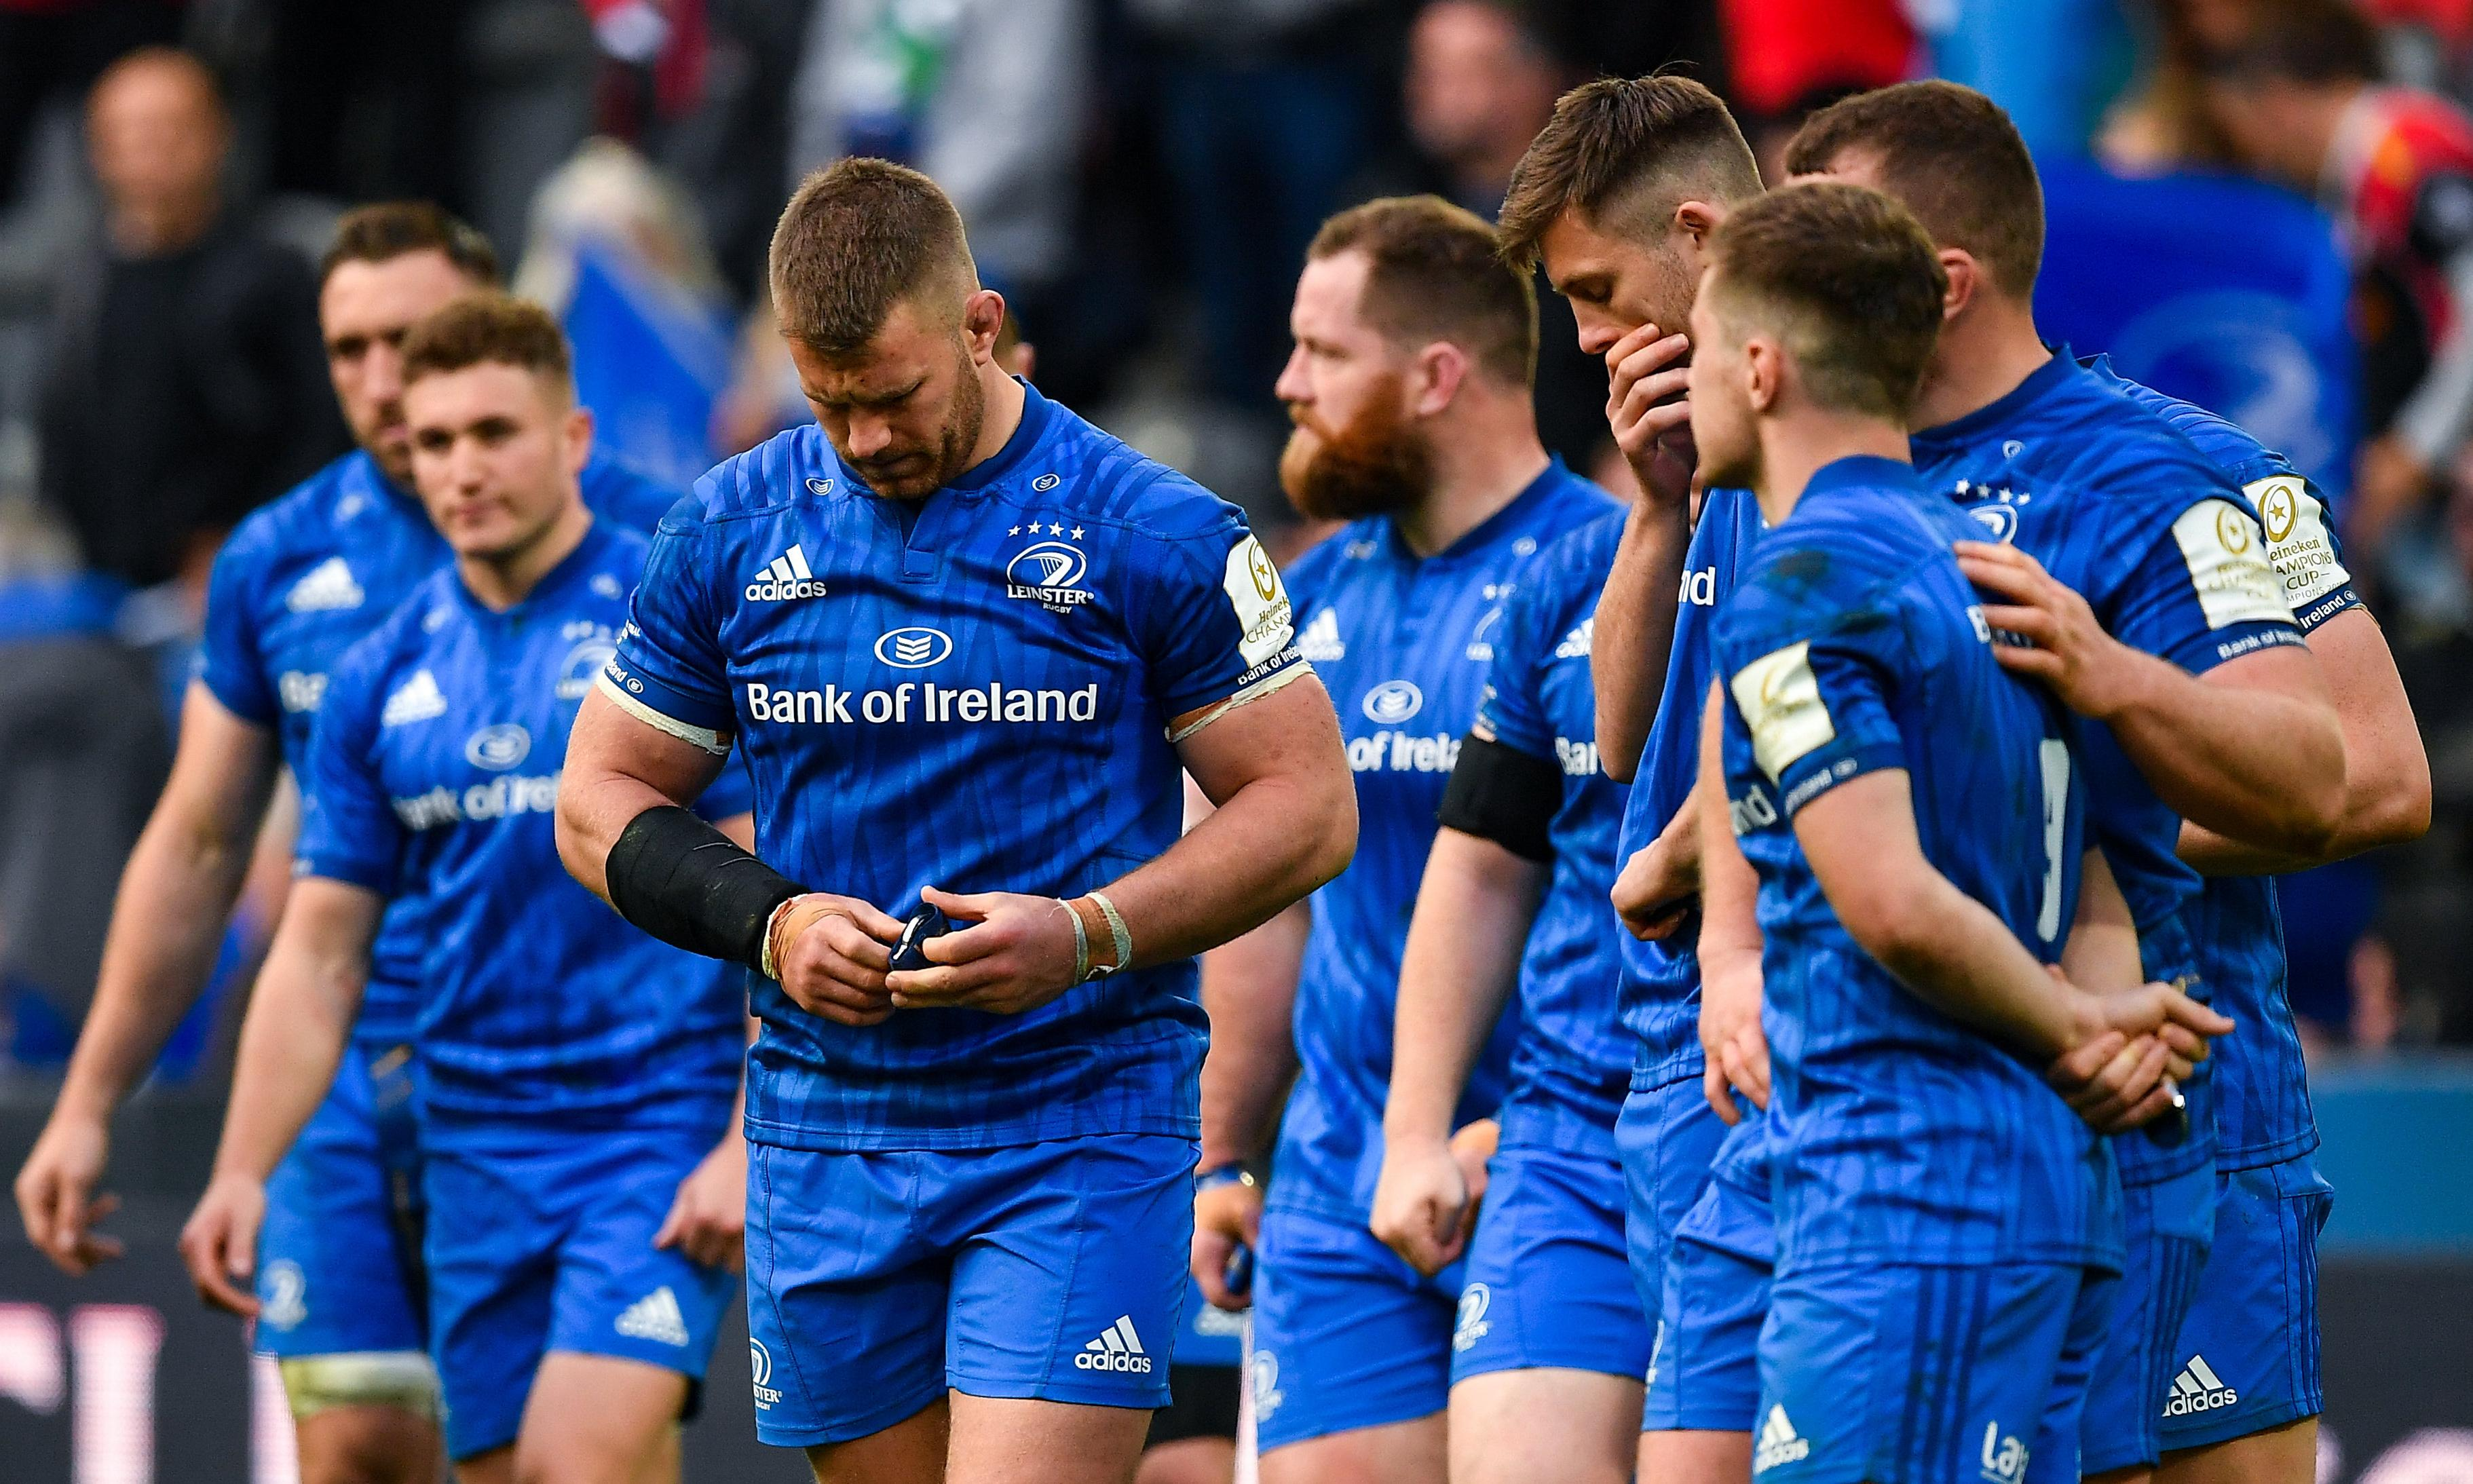 Ireland suffer Rugby World Cup injury blow as Sean O'Brien is ruled out